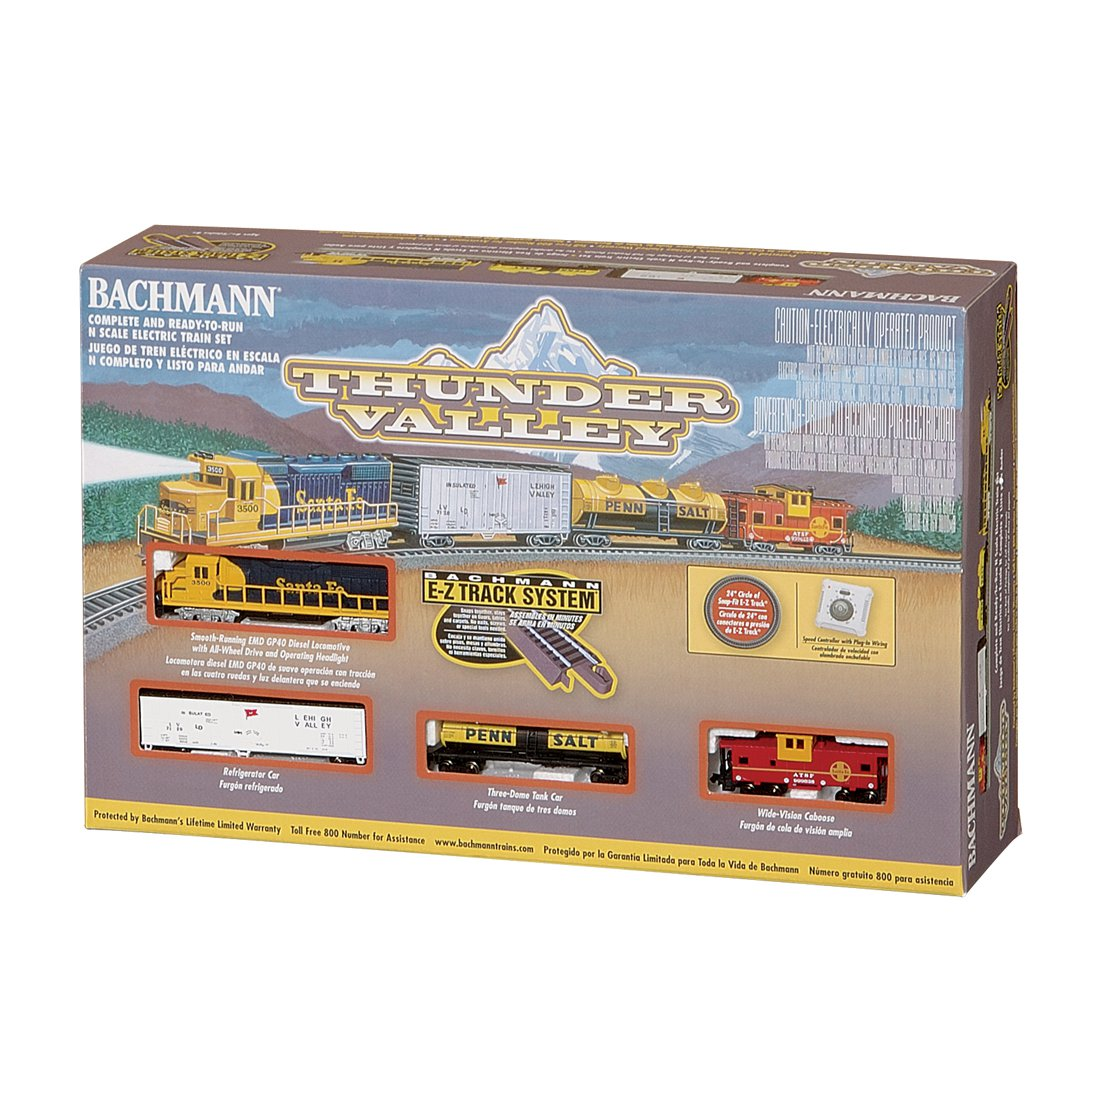 Bachmann N Scale Thunder Valley Electric Train Set by Bachmann Industries, Inc.